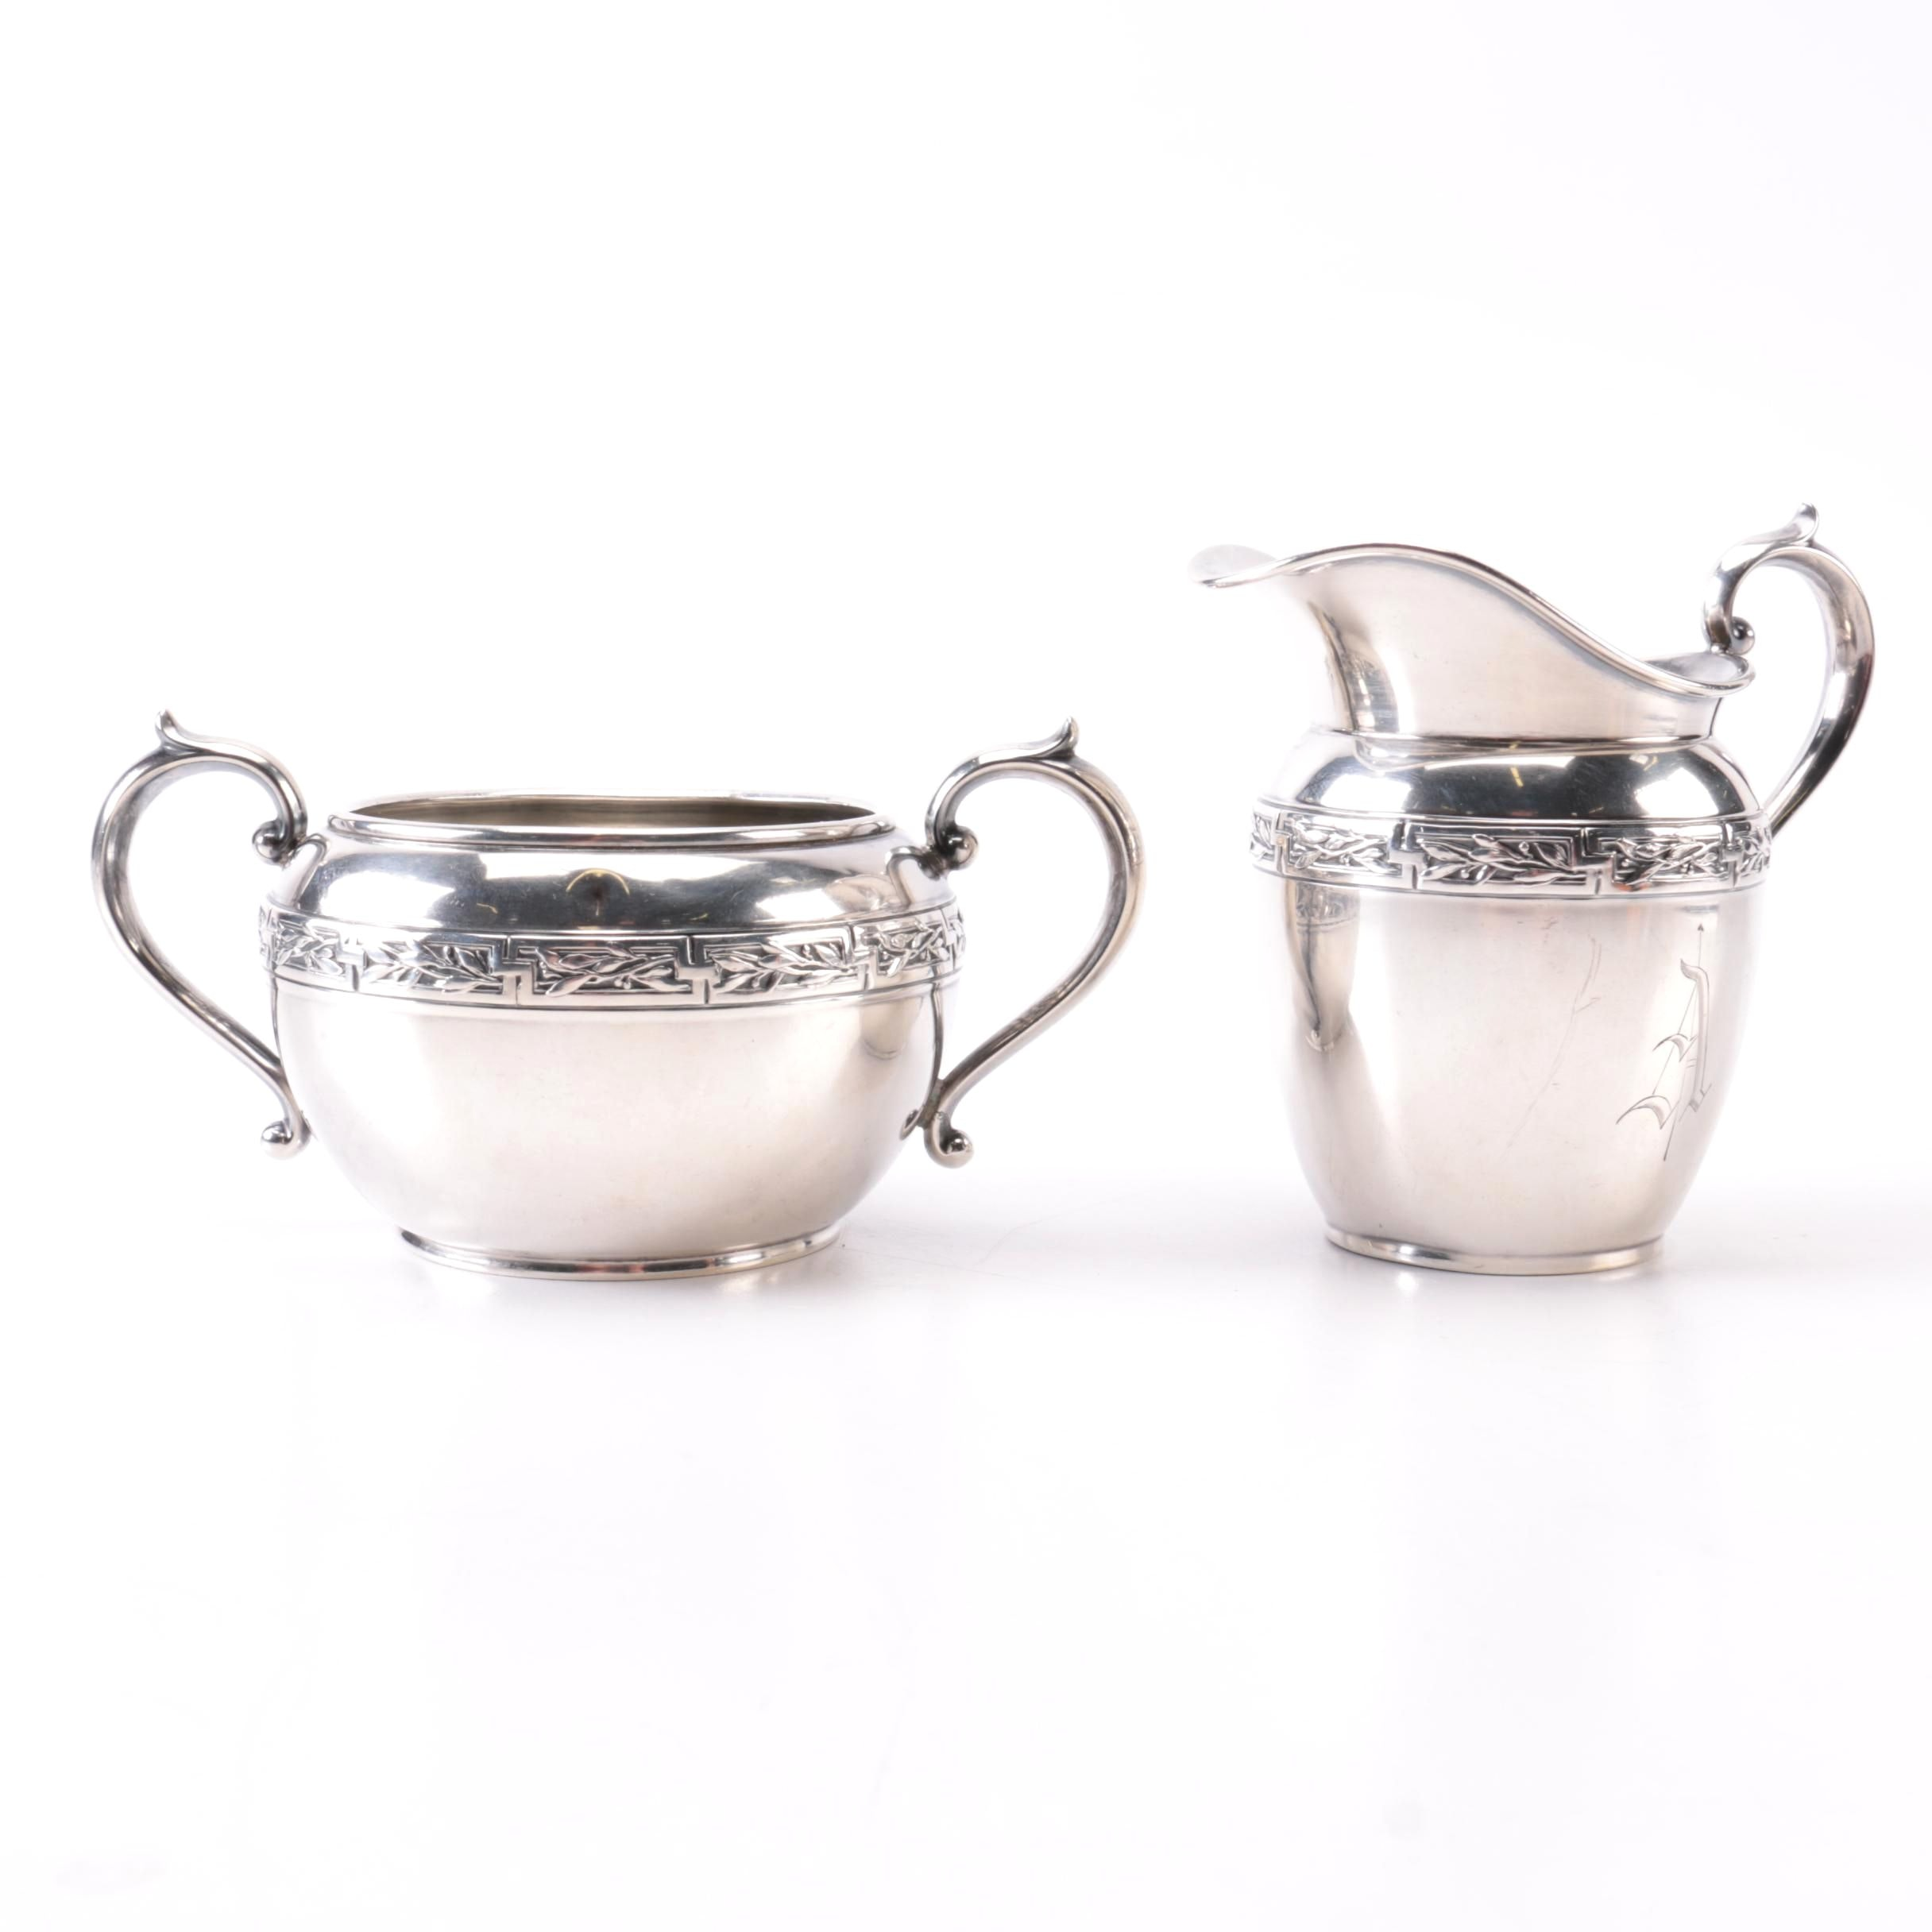 Gorham Sterling Creamer and Sugar